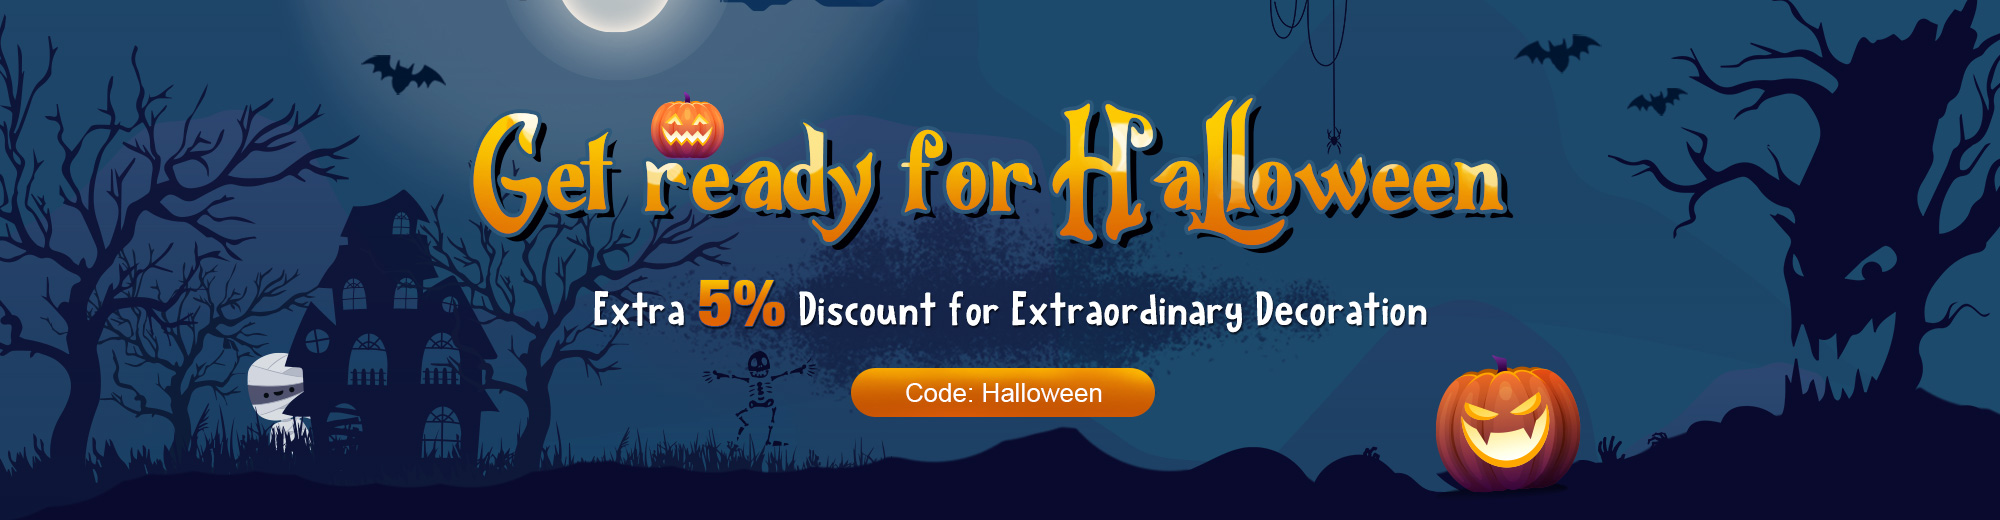 SEO, blow out, bestseller, halloween, costway uk, shop